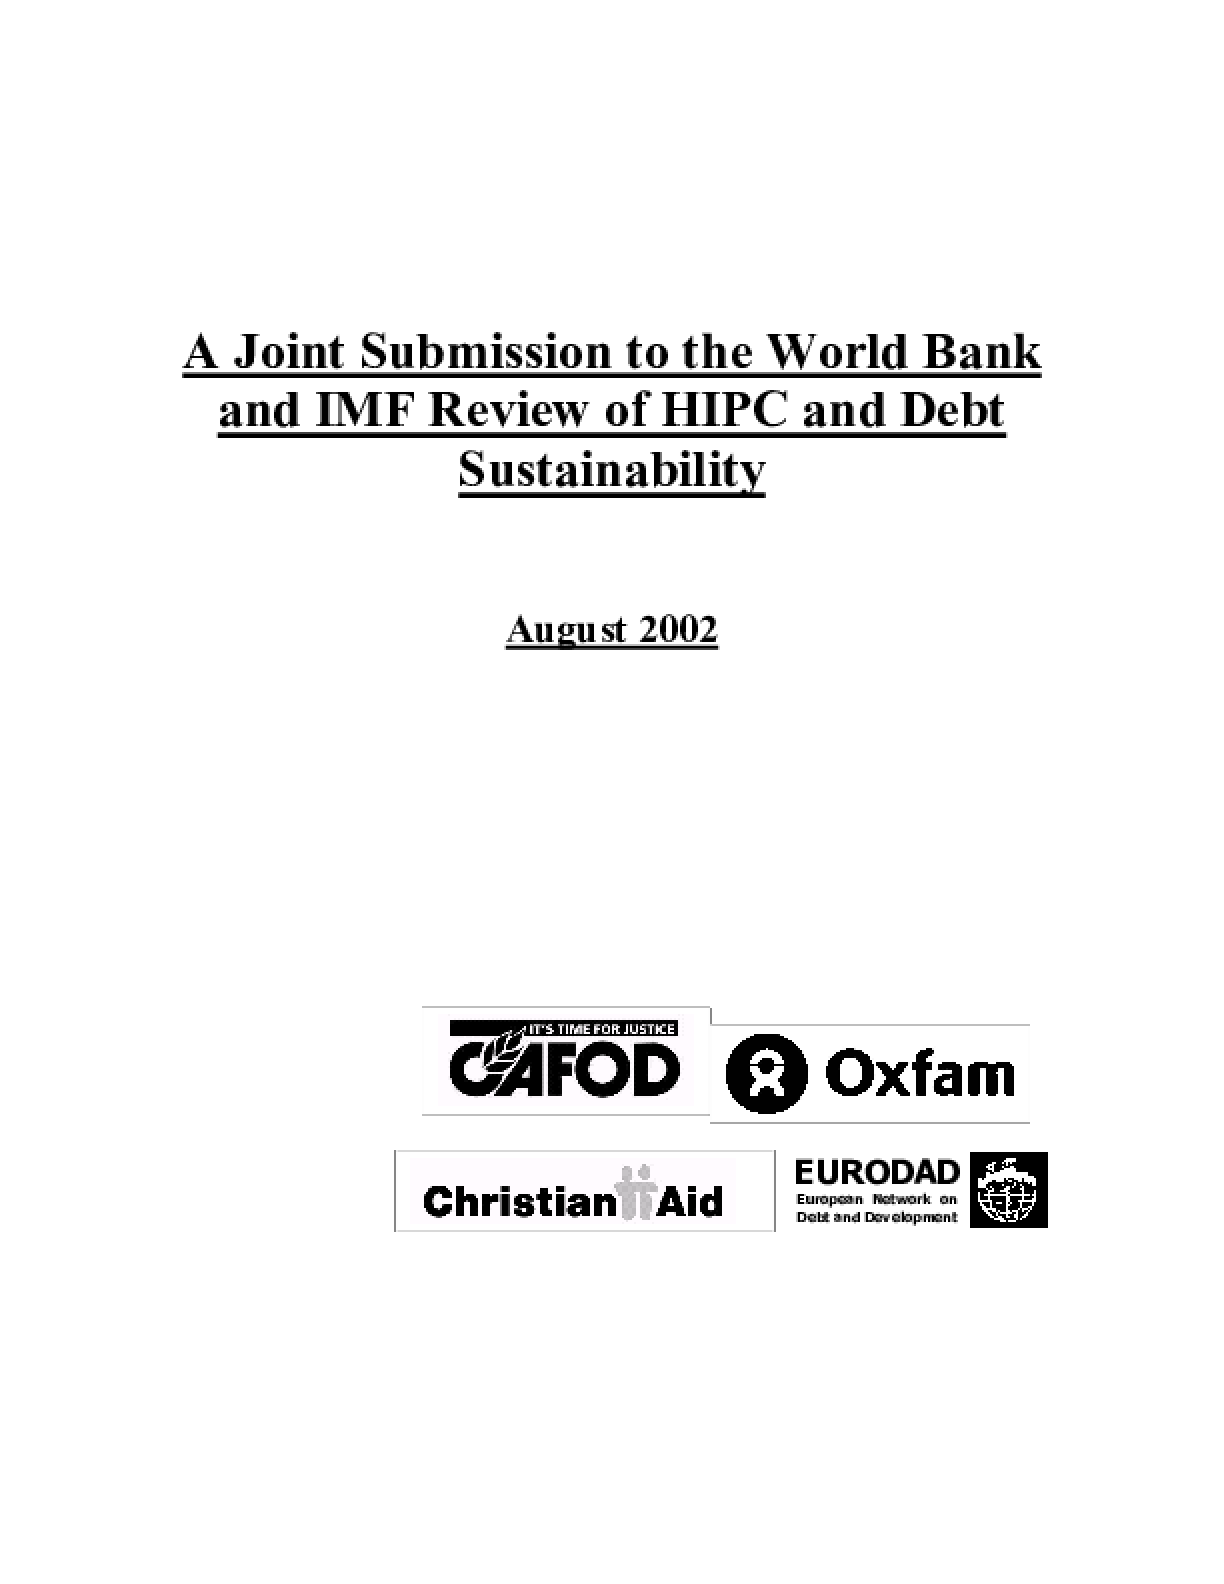 A Joint Submission to the World Bank and IMF Review of HIPC and Debt Sustainability